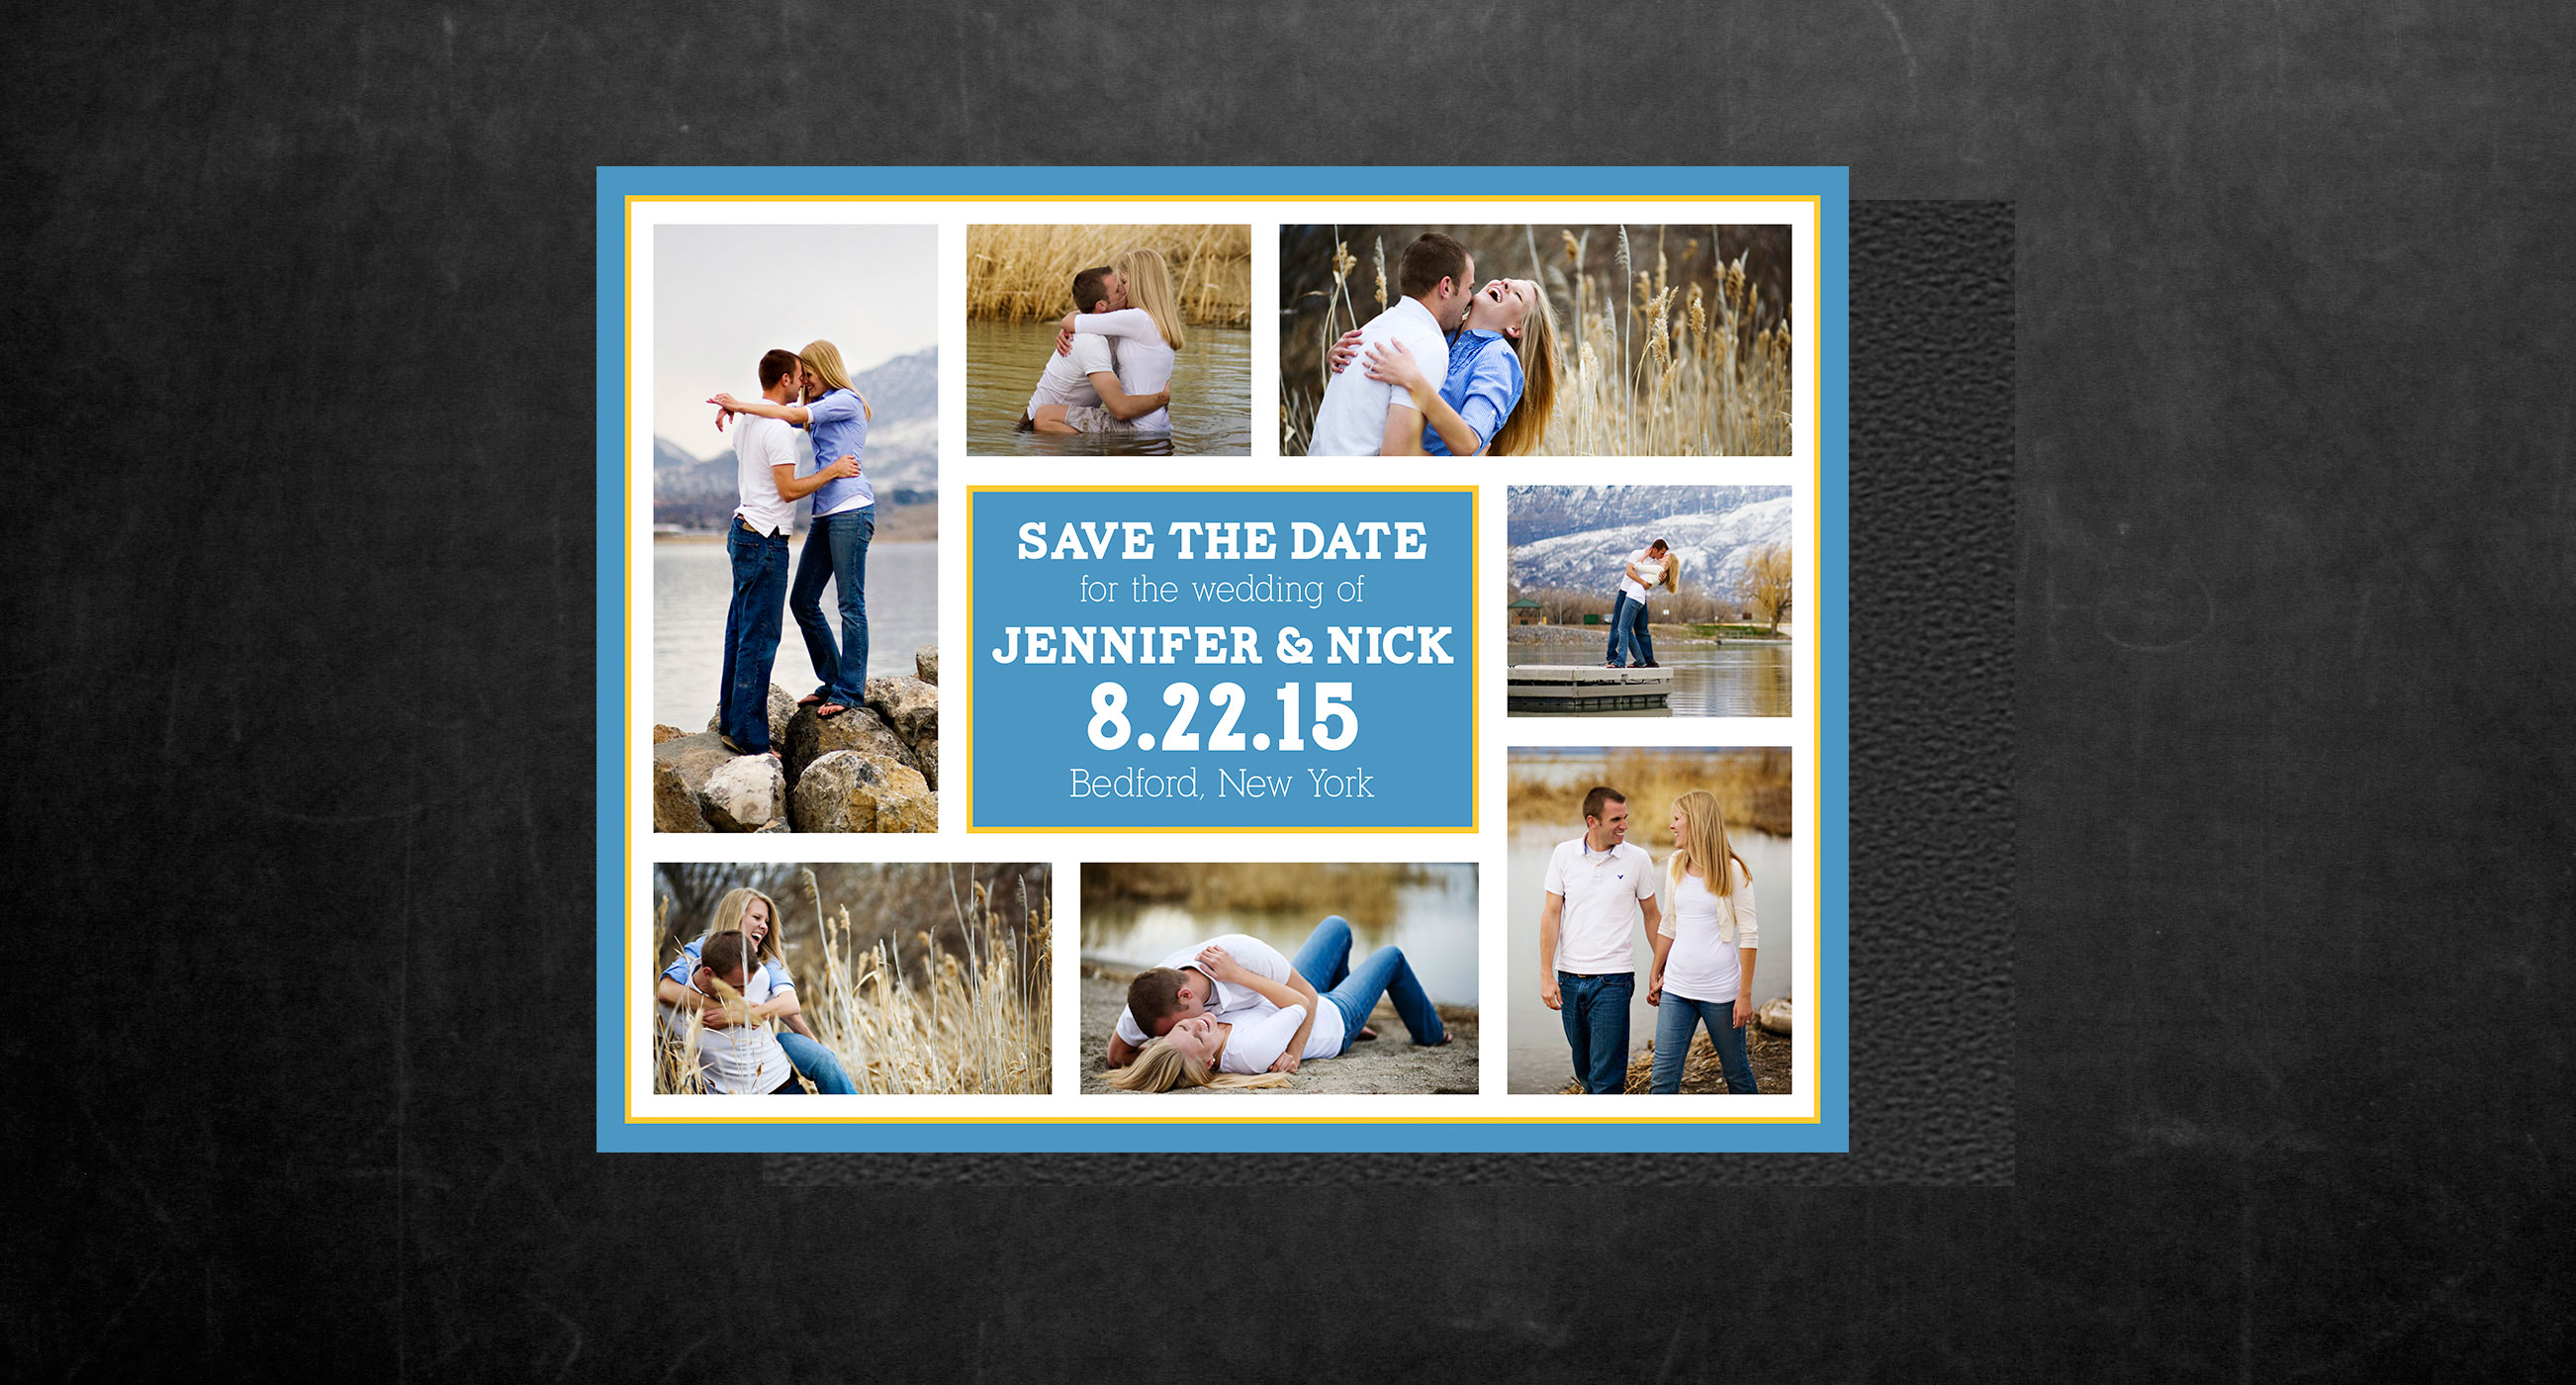 Wedding Invitations And Save The Dates Magnets Unique Wedding – Magnet Save the Date Cards for Weddings